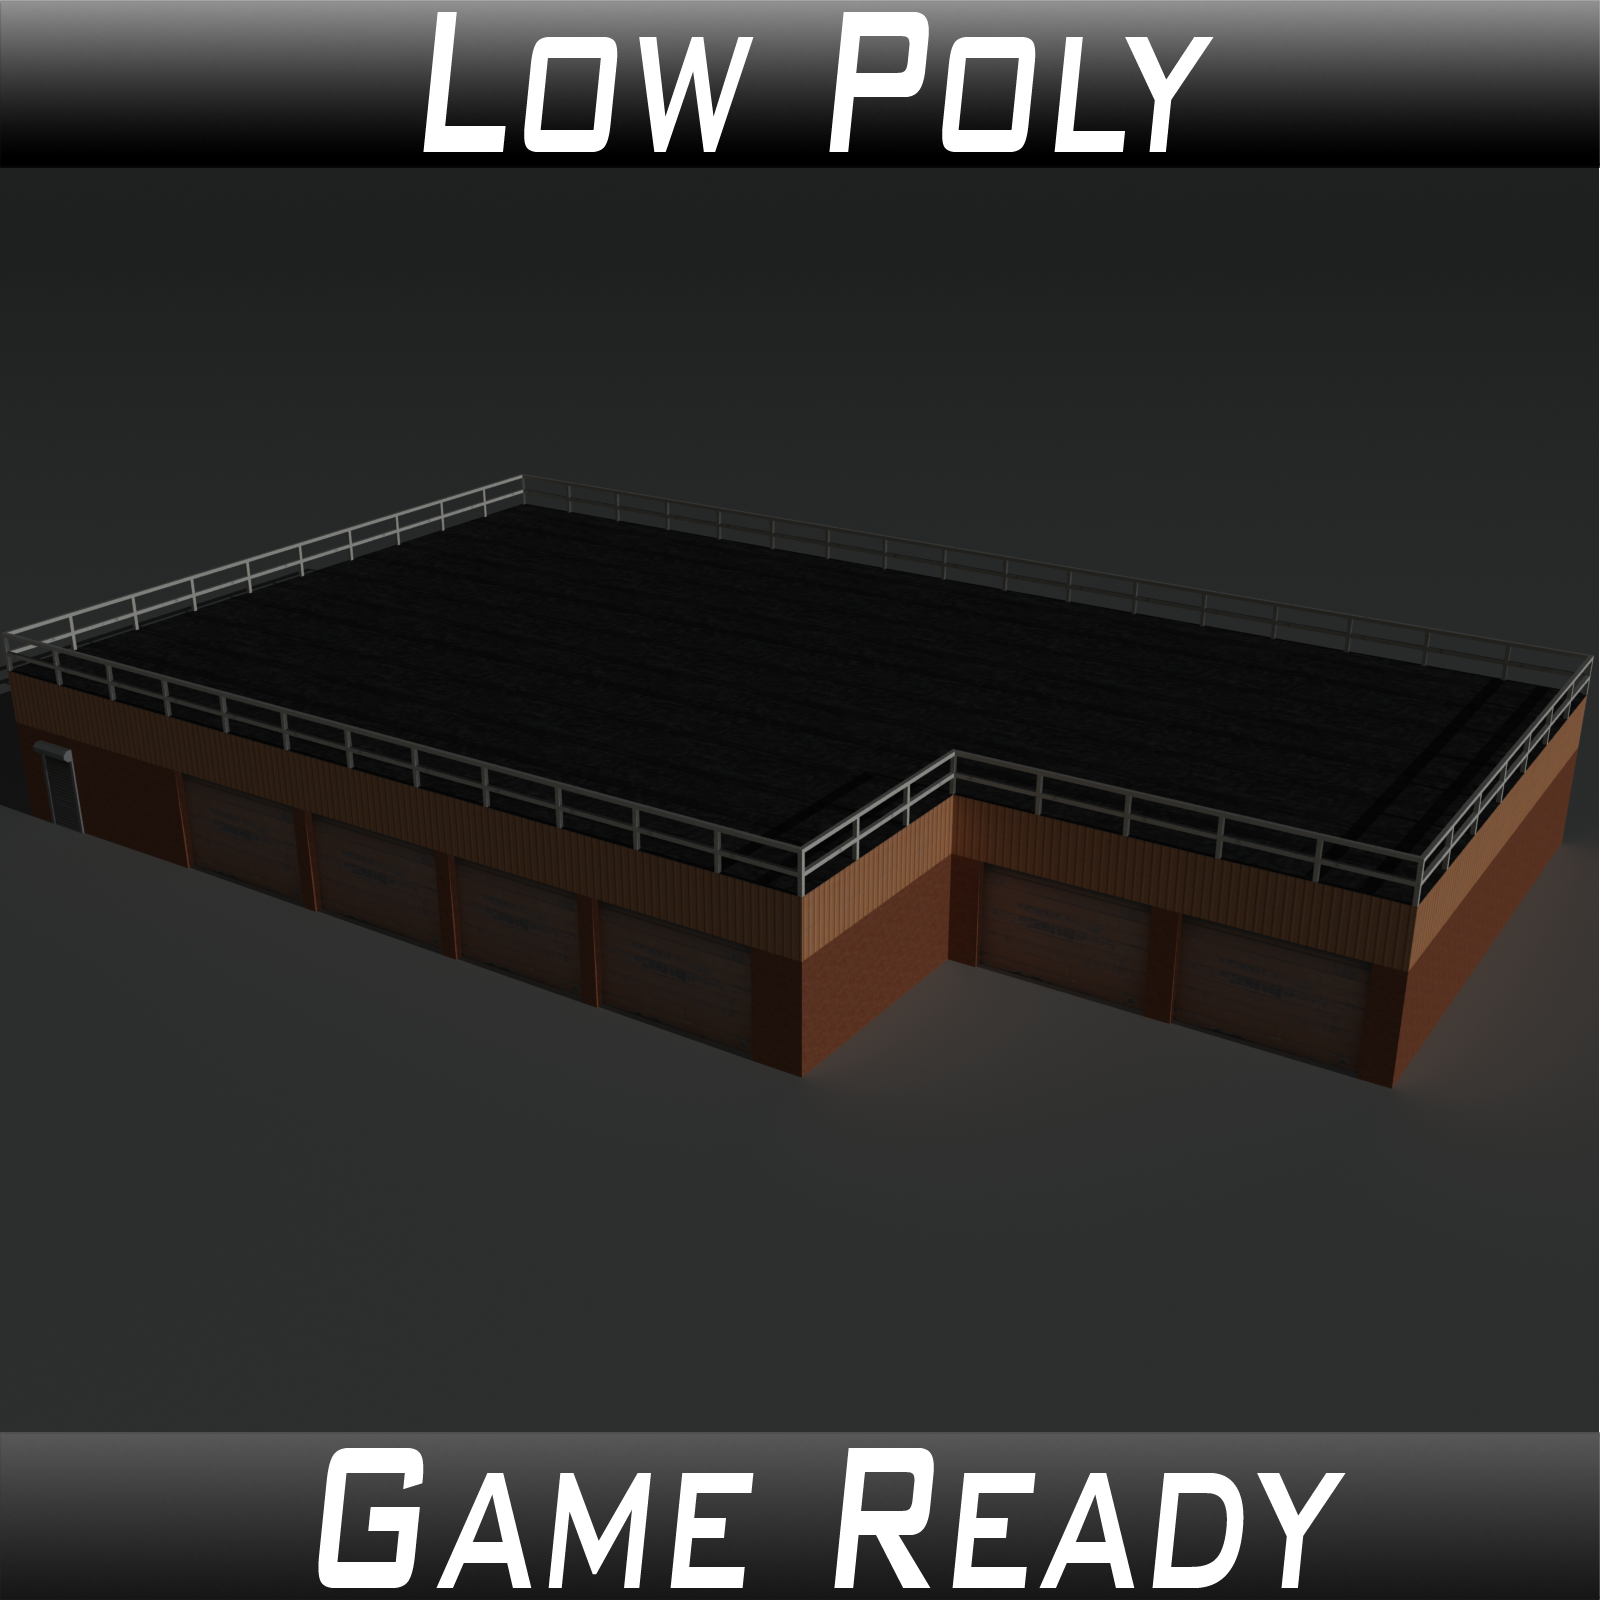 Low Poly Factory Building 15 - Extended Licence